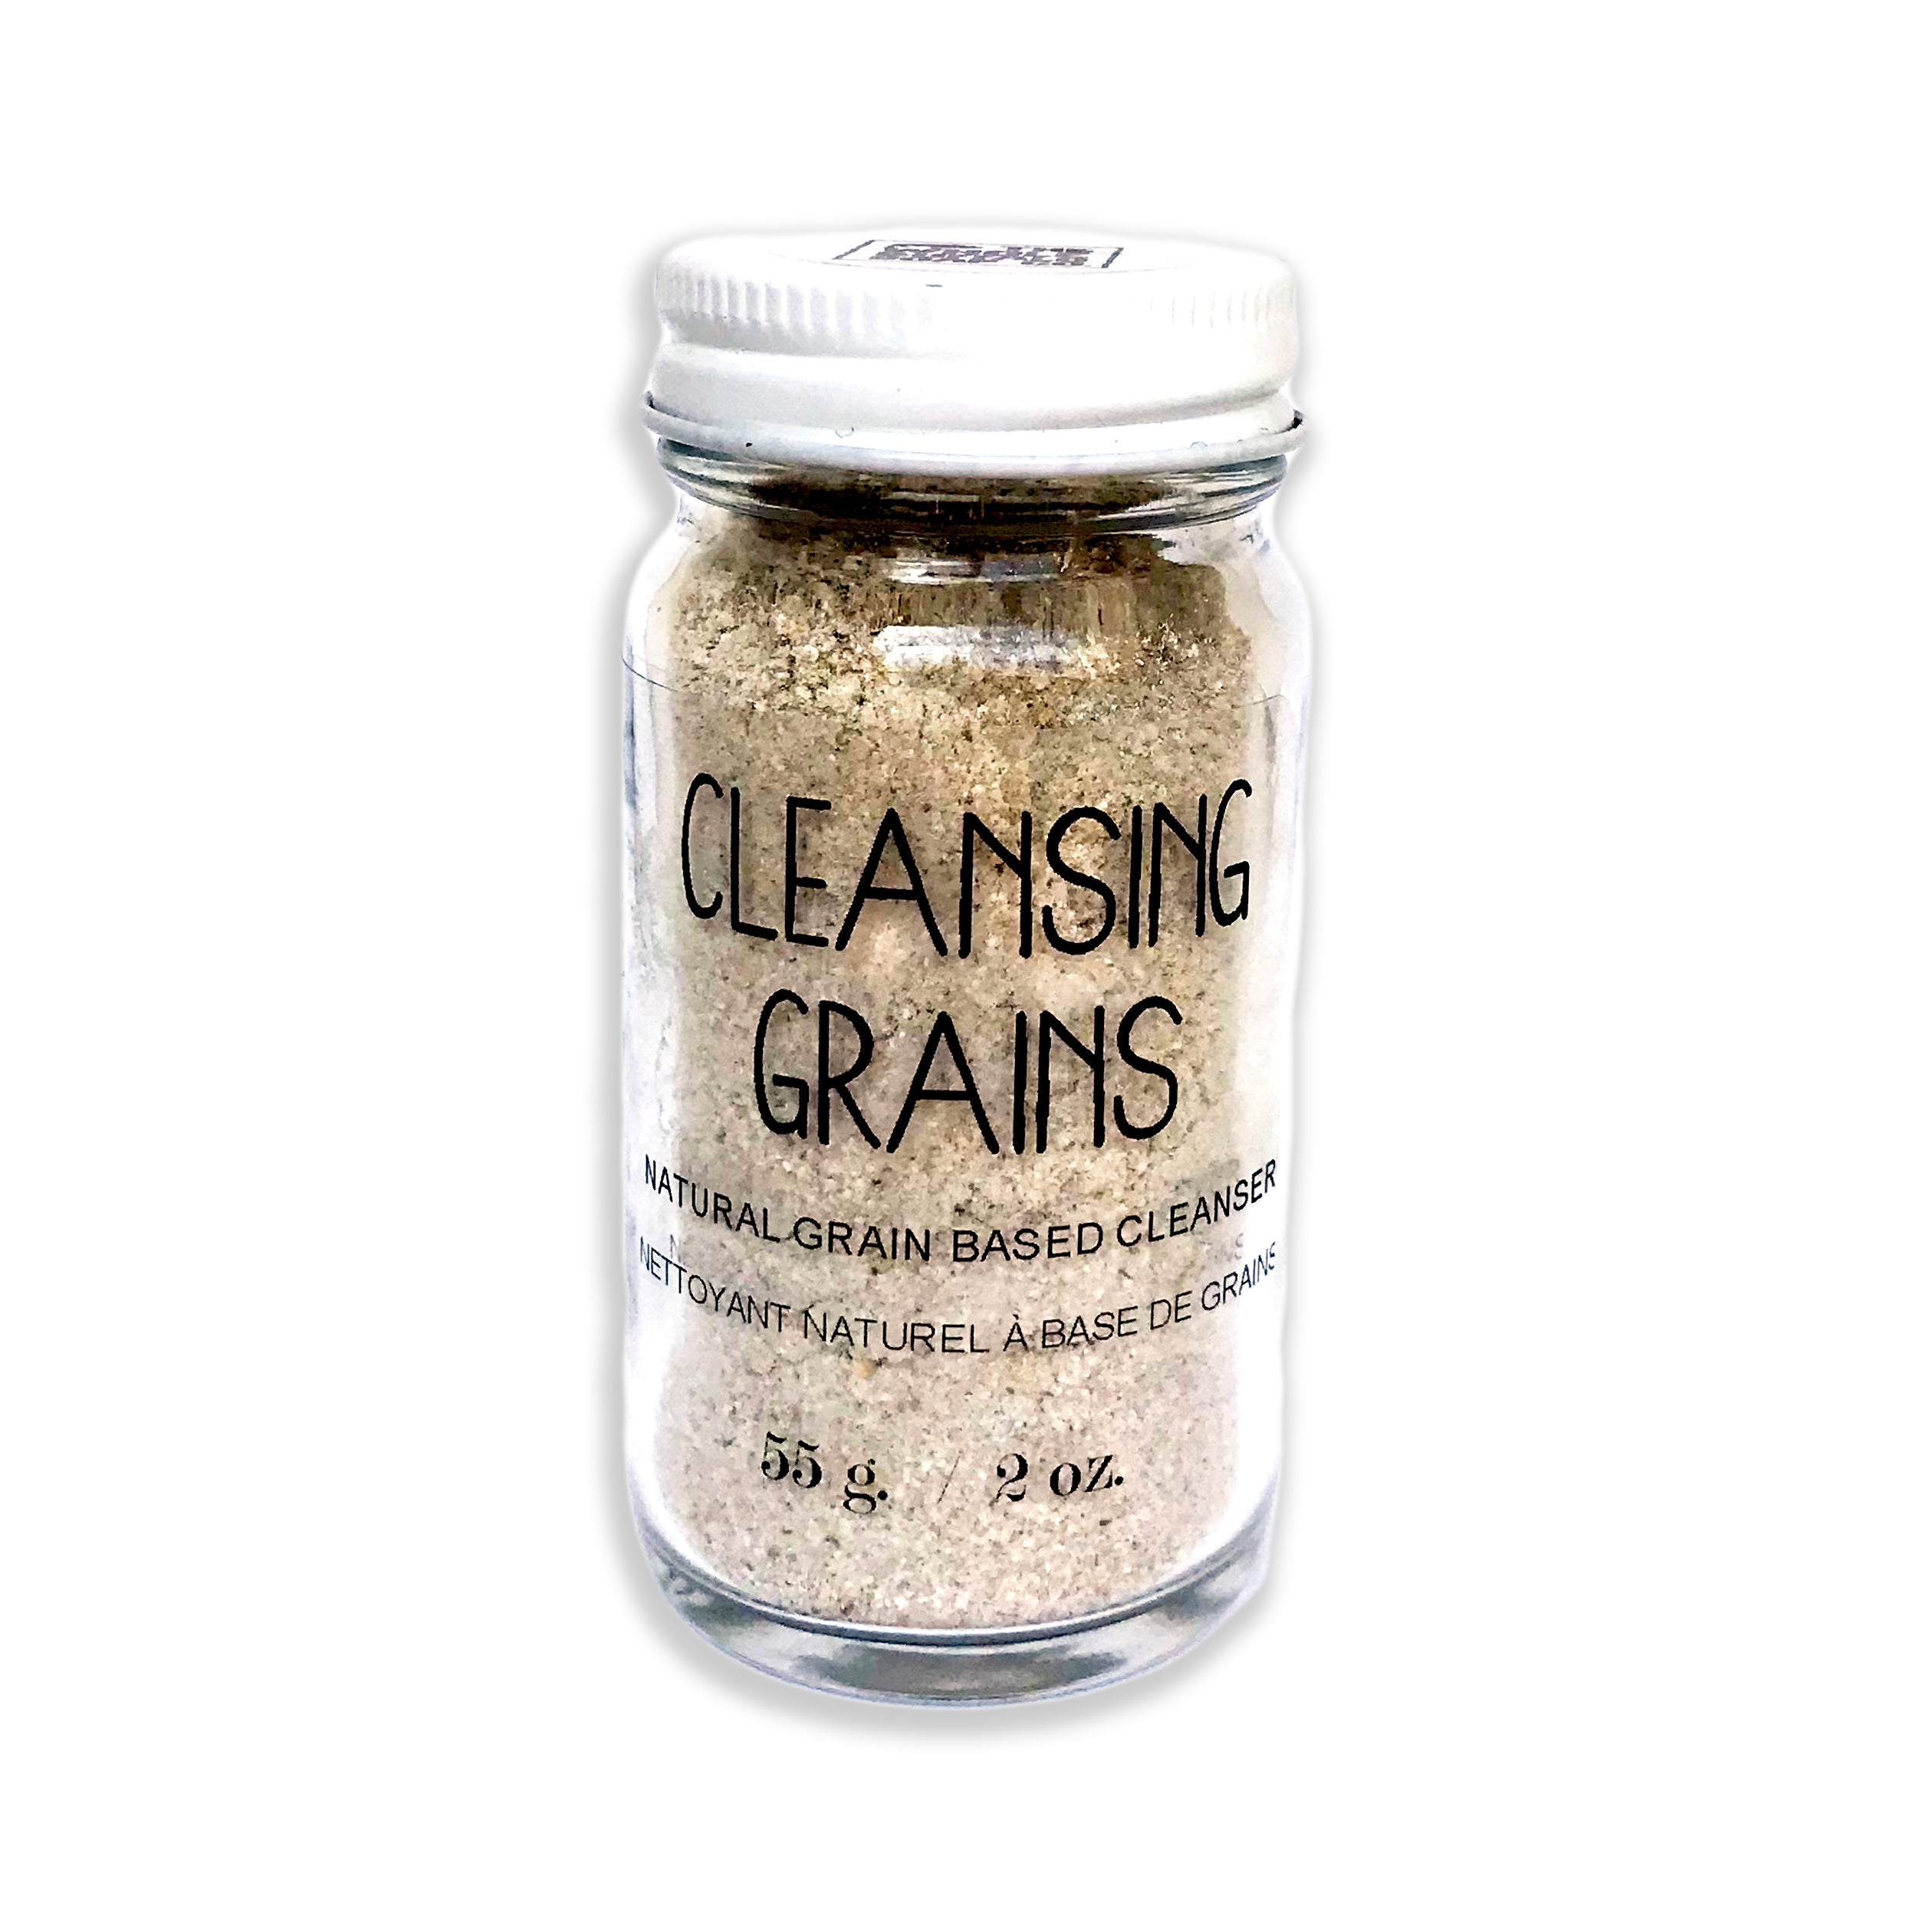 Cleansing Grains